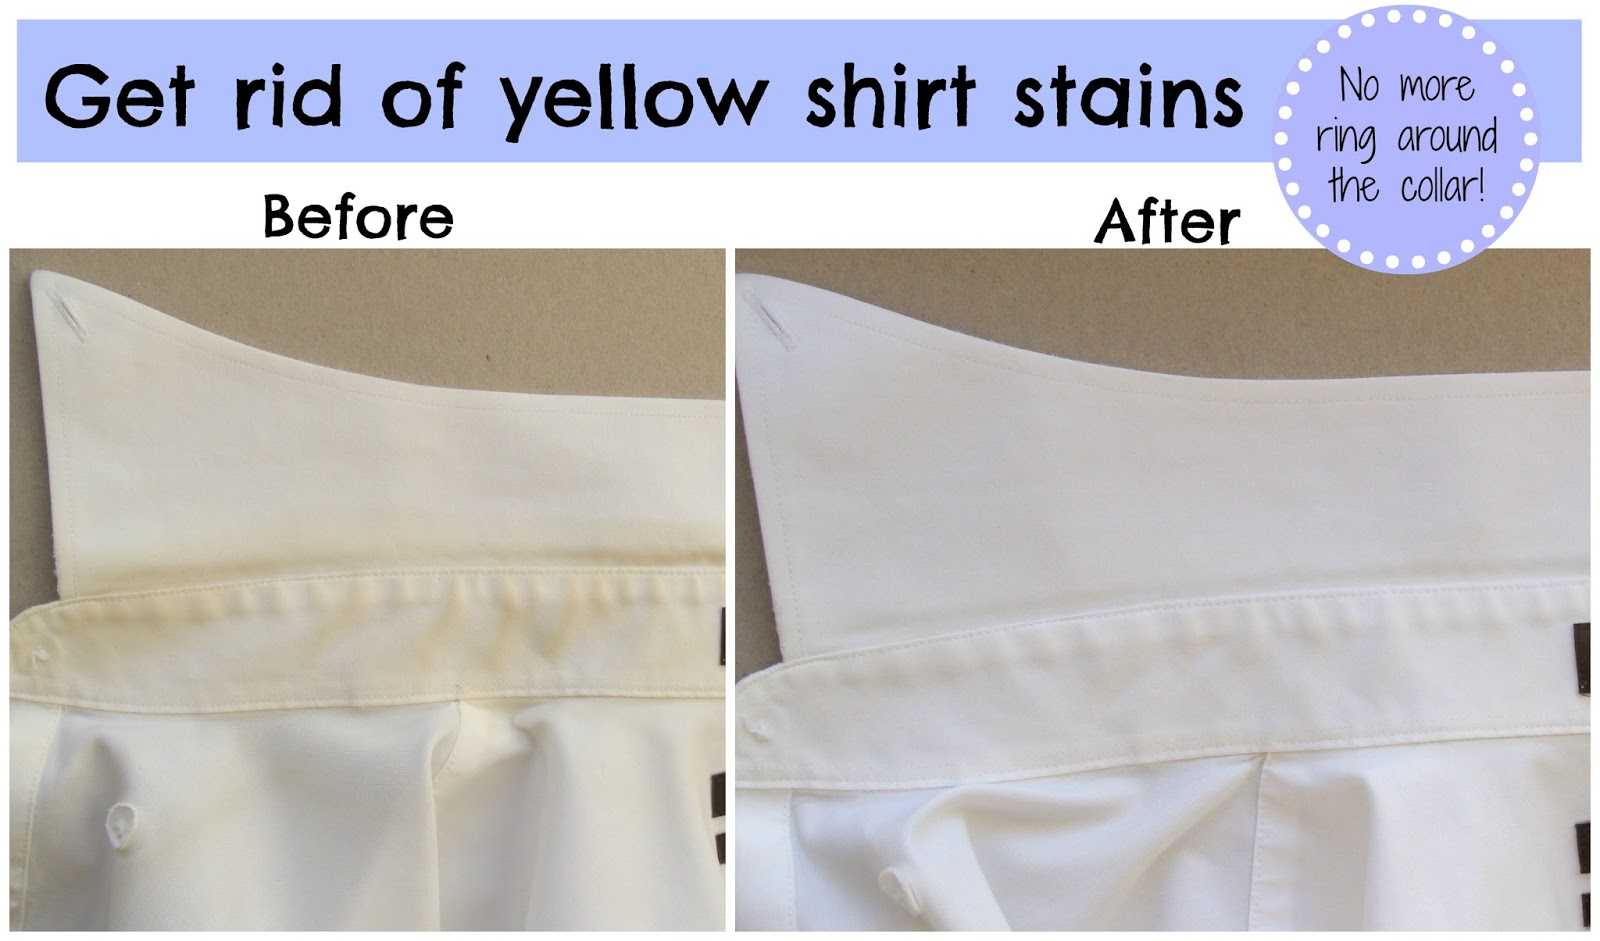 Sewing tutorials crafts diy handmade shannon sews for How to clean white dress shirts